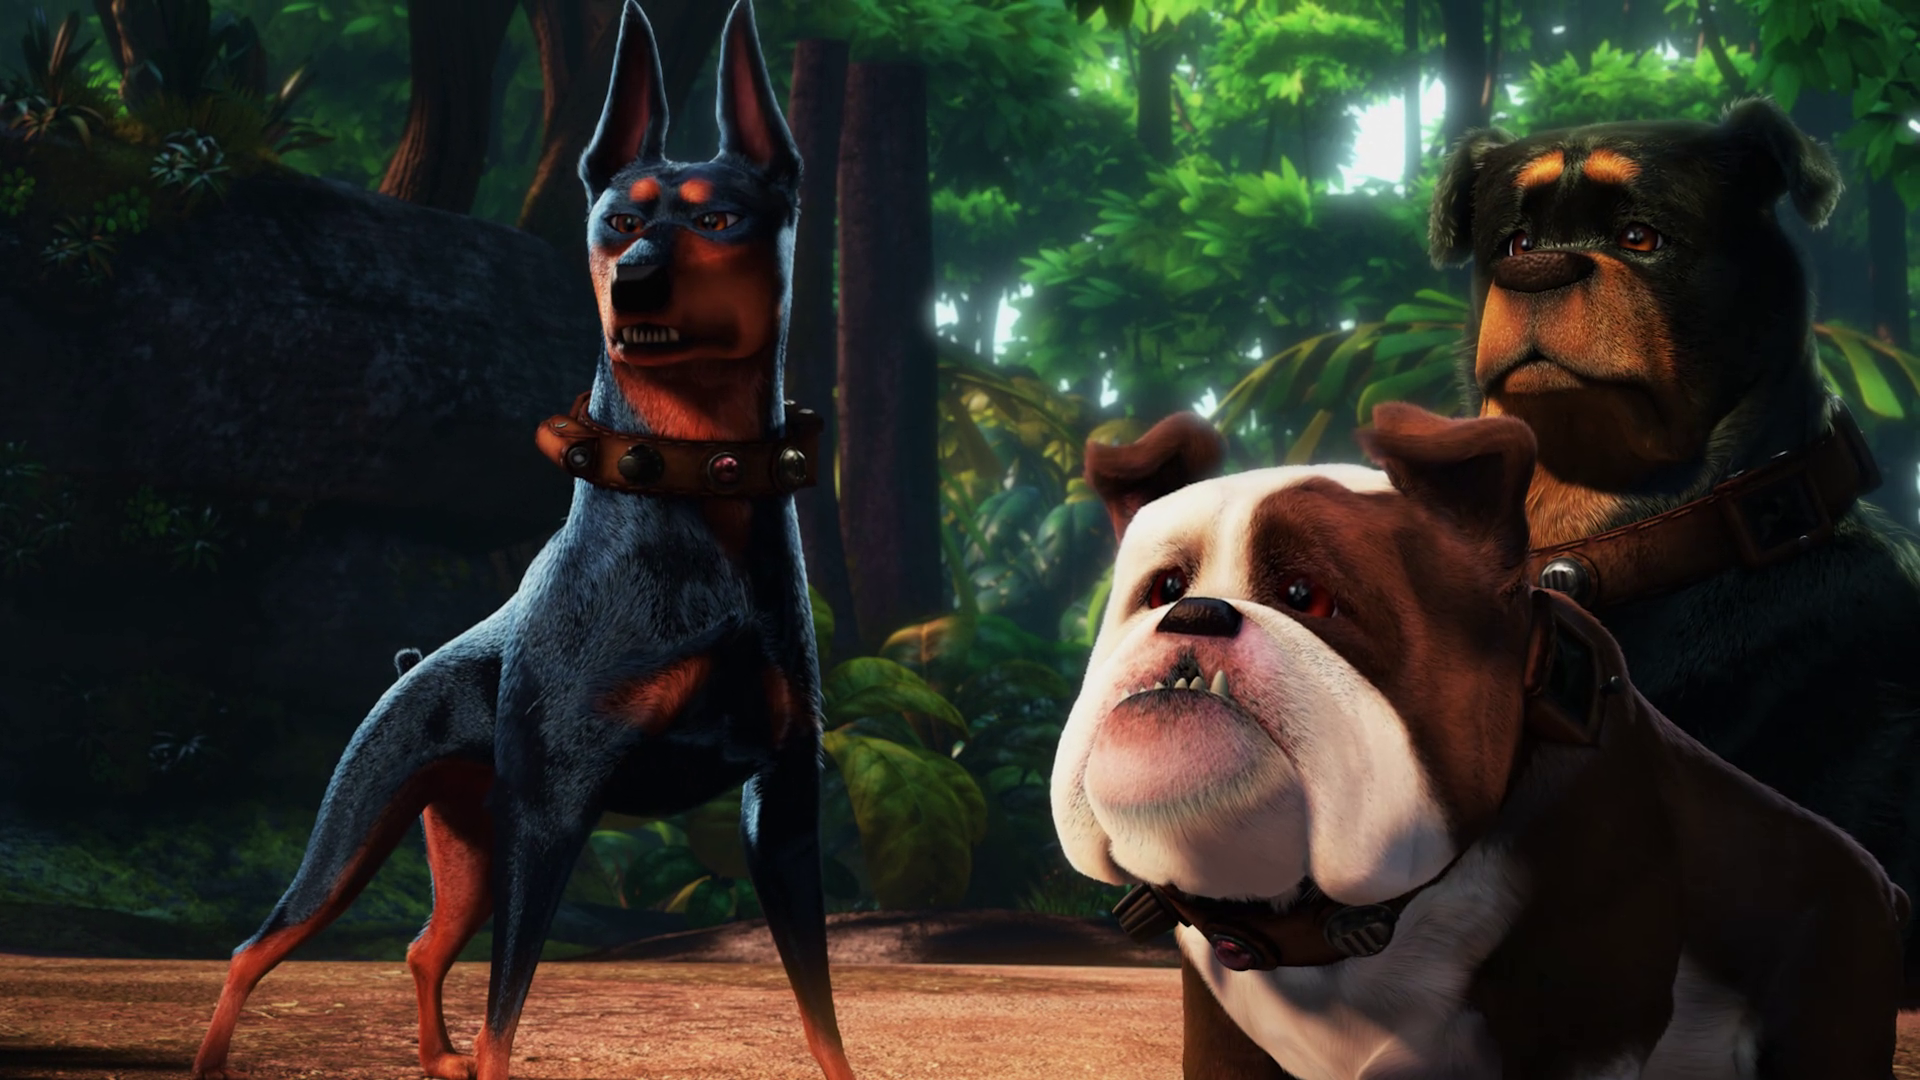 What Breed Of Dog Is Doug From The Movie Up